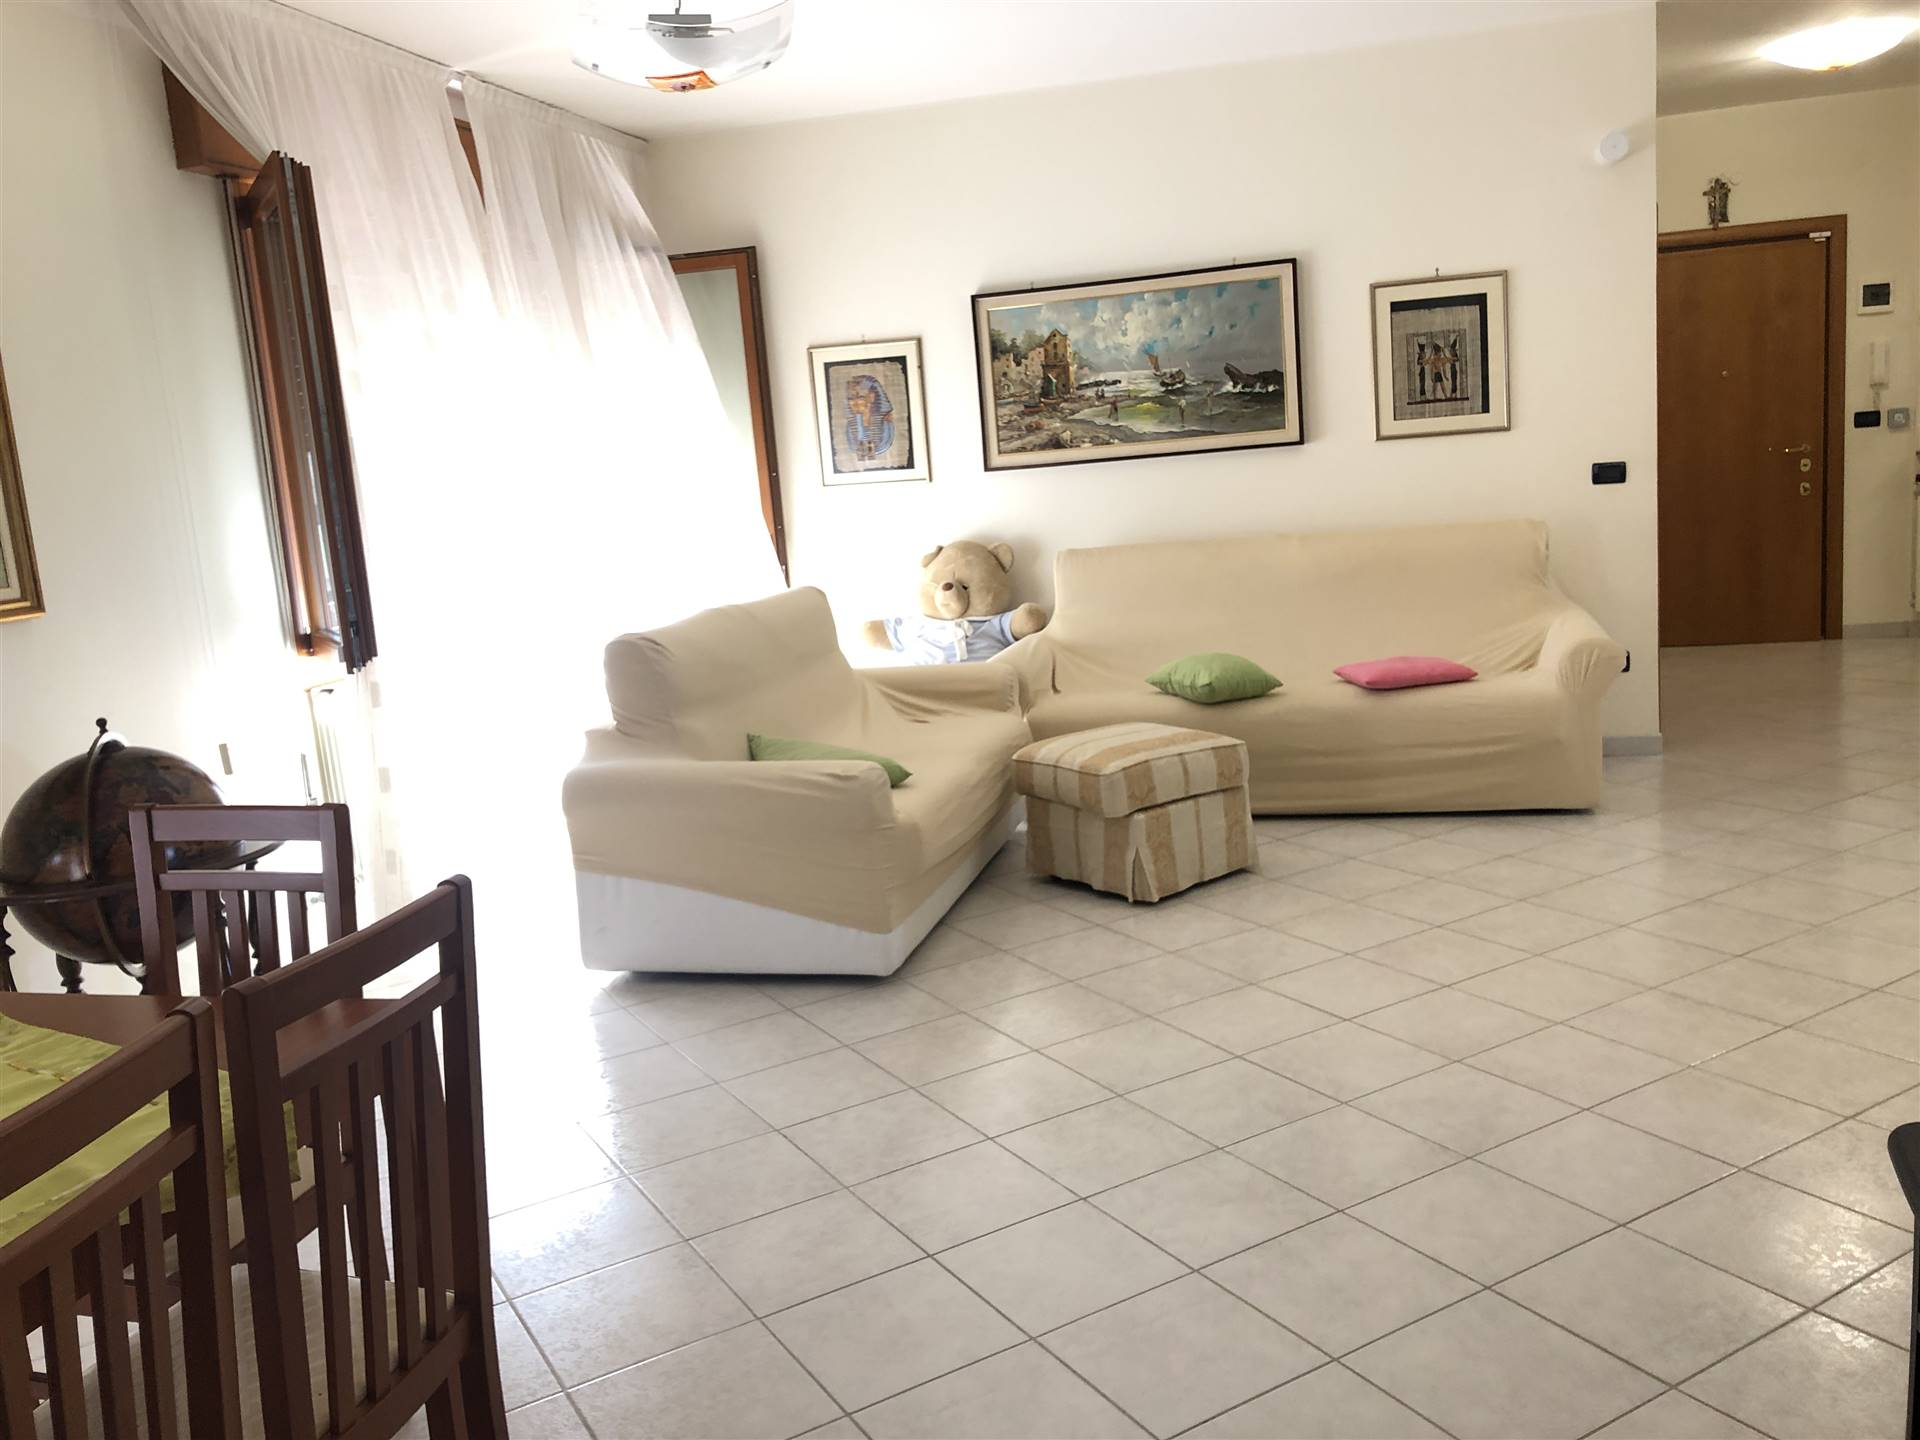 BORGO SAN GIOVANNI, CHIOGGIA, Apartment for sale of 100 Sq. mt., Excellent Condition, Heating Individual heating system, Energetic class: G, placed